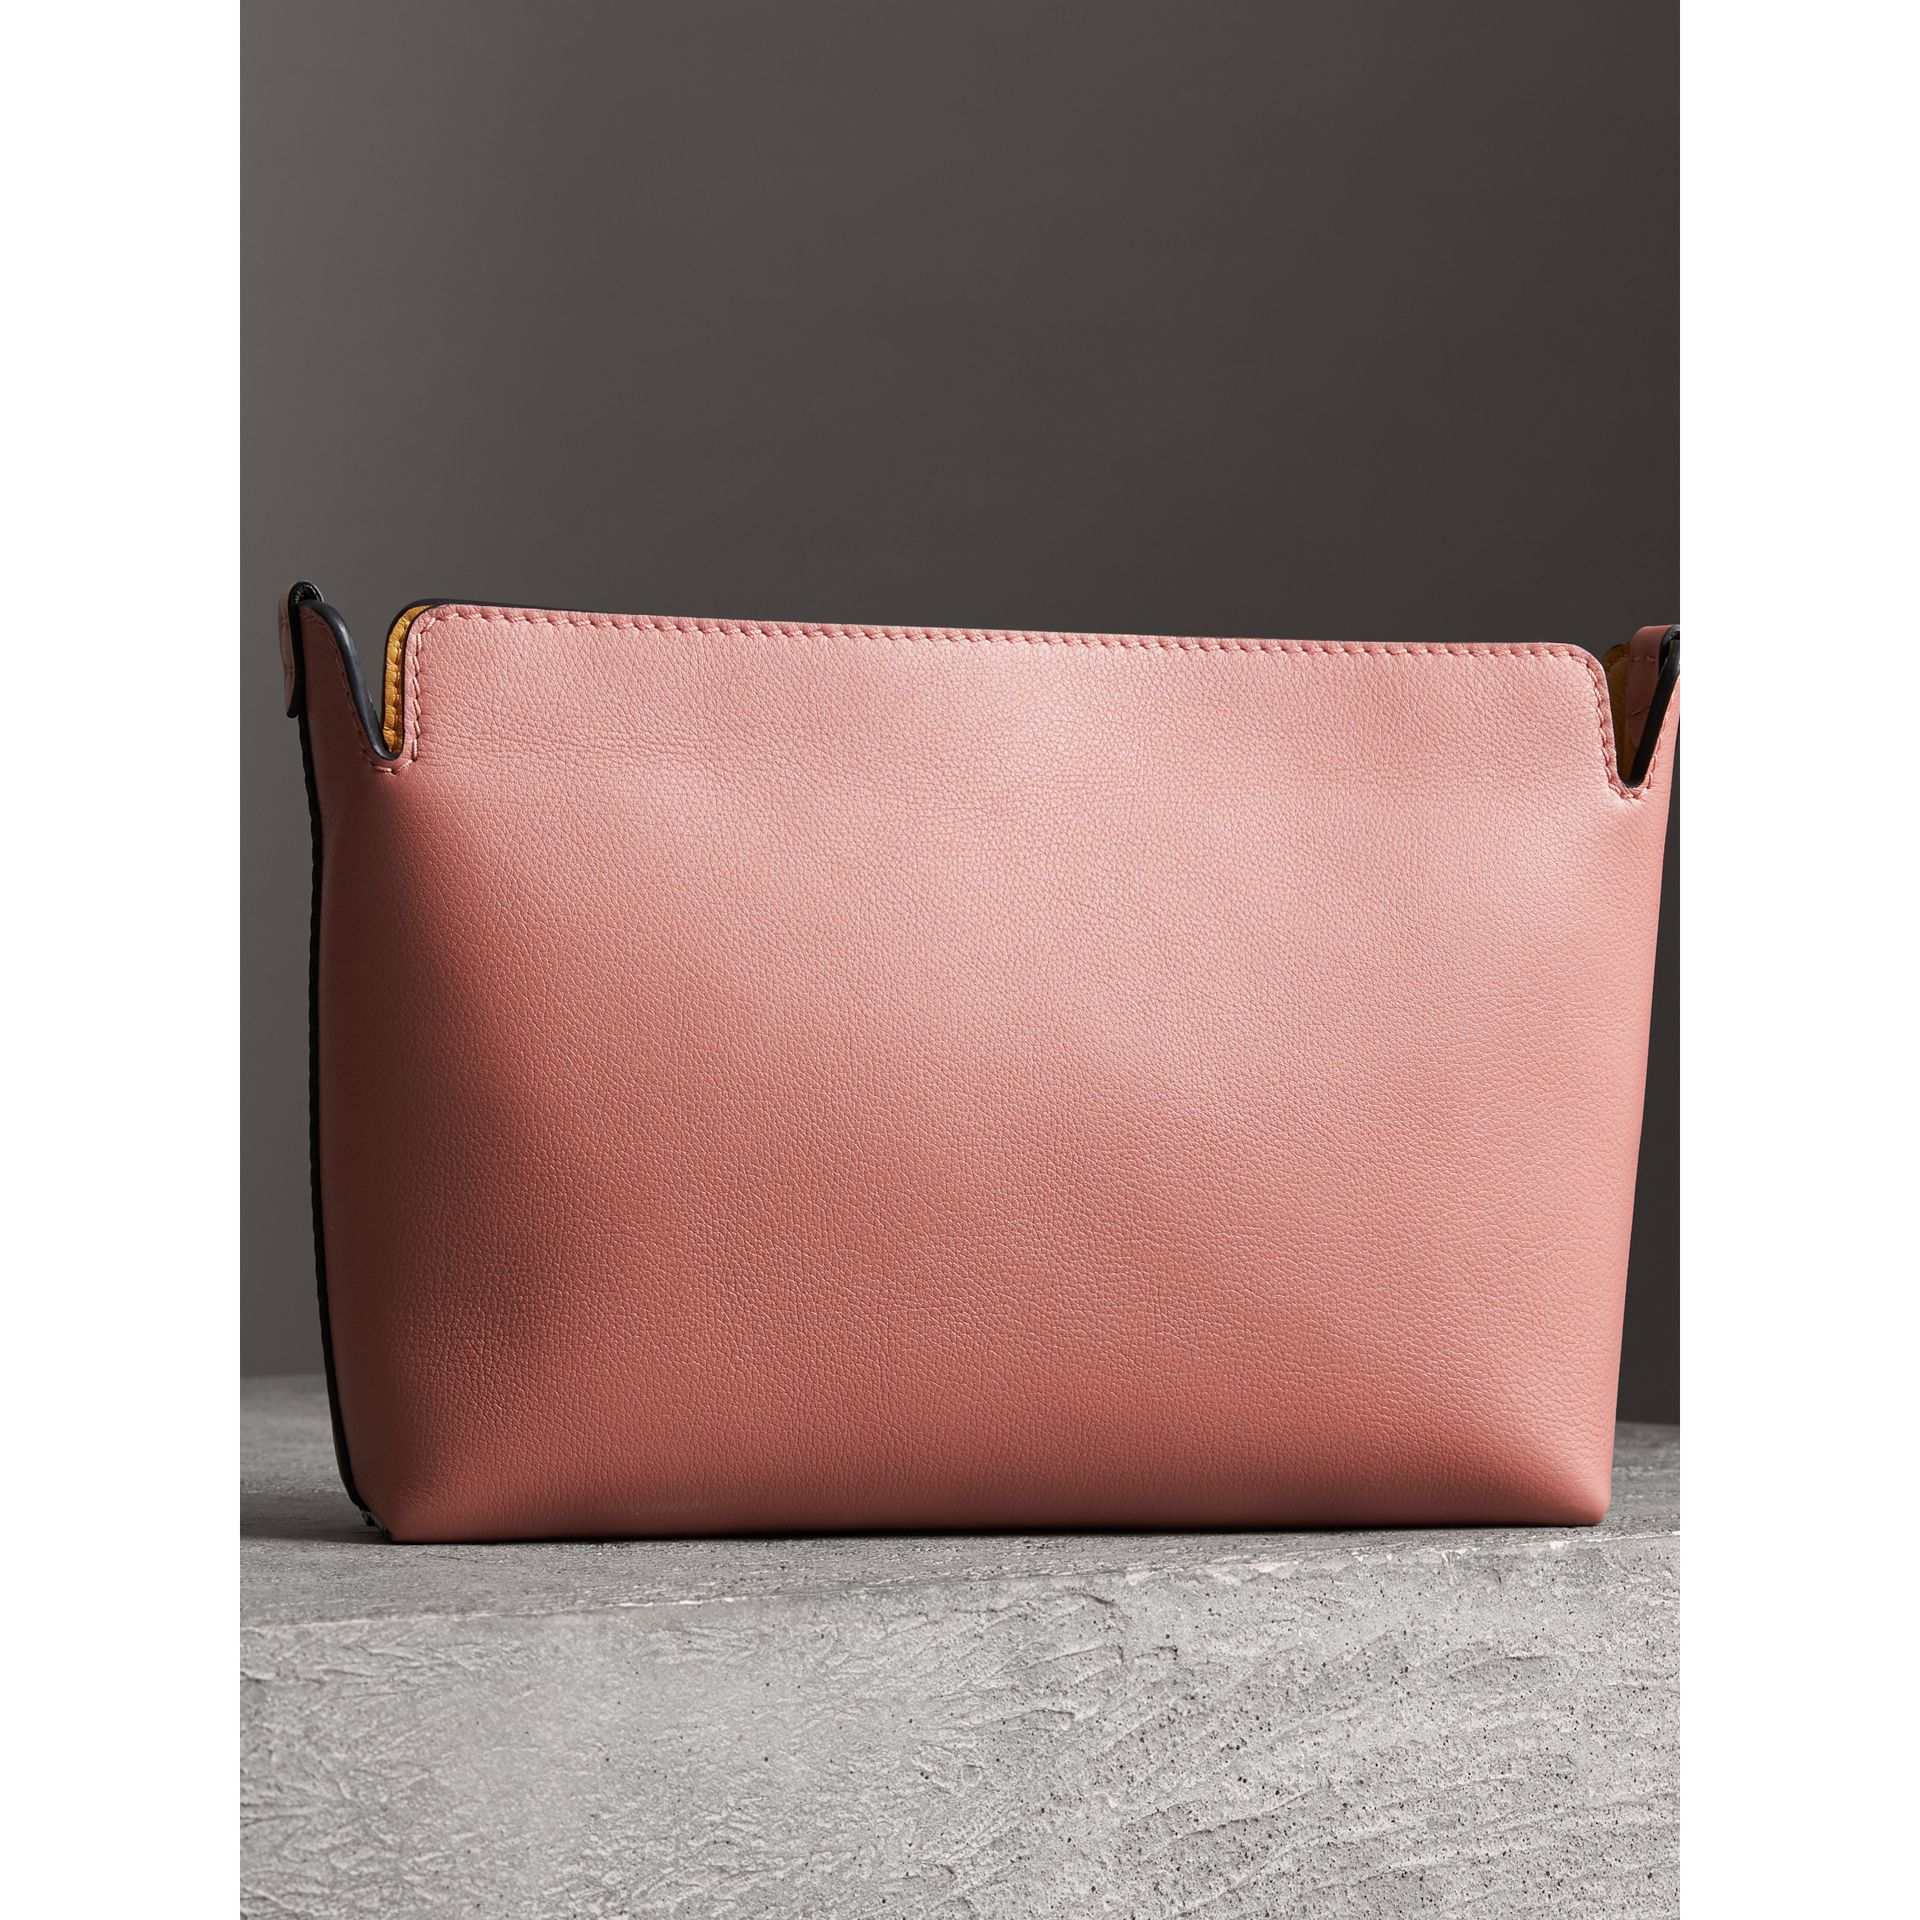 Medium Tri-tone Leather Clutch in Deep Claret/dusty Rose | Burberry Hong Kong - gallery image 4